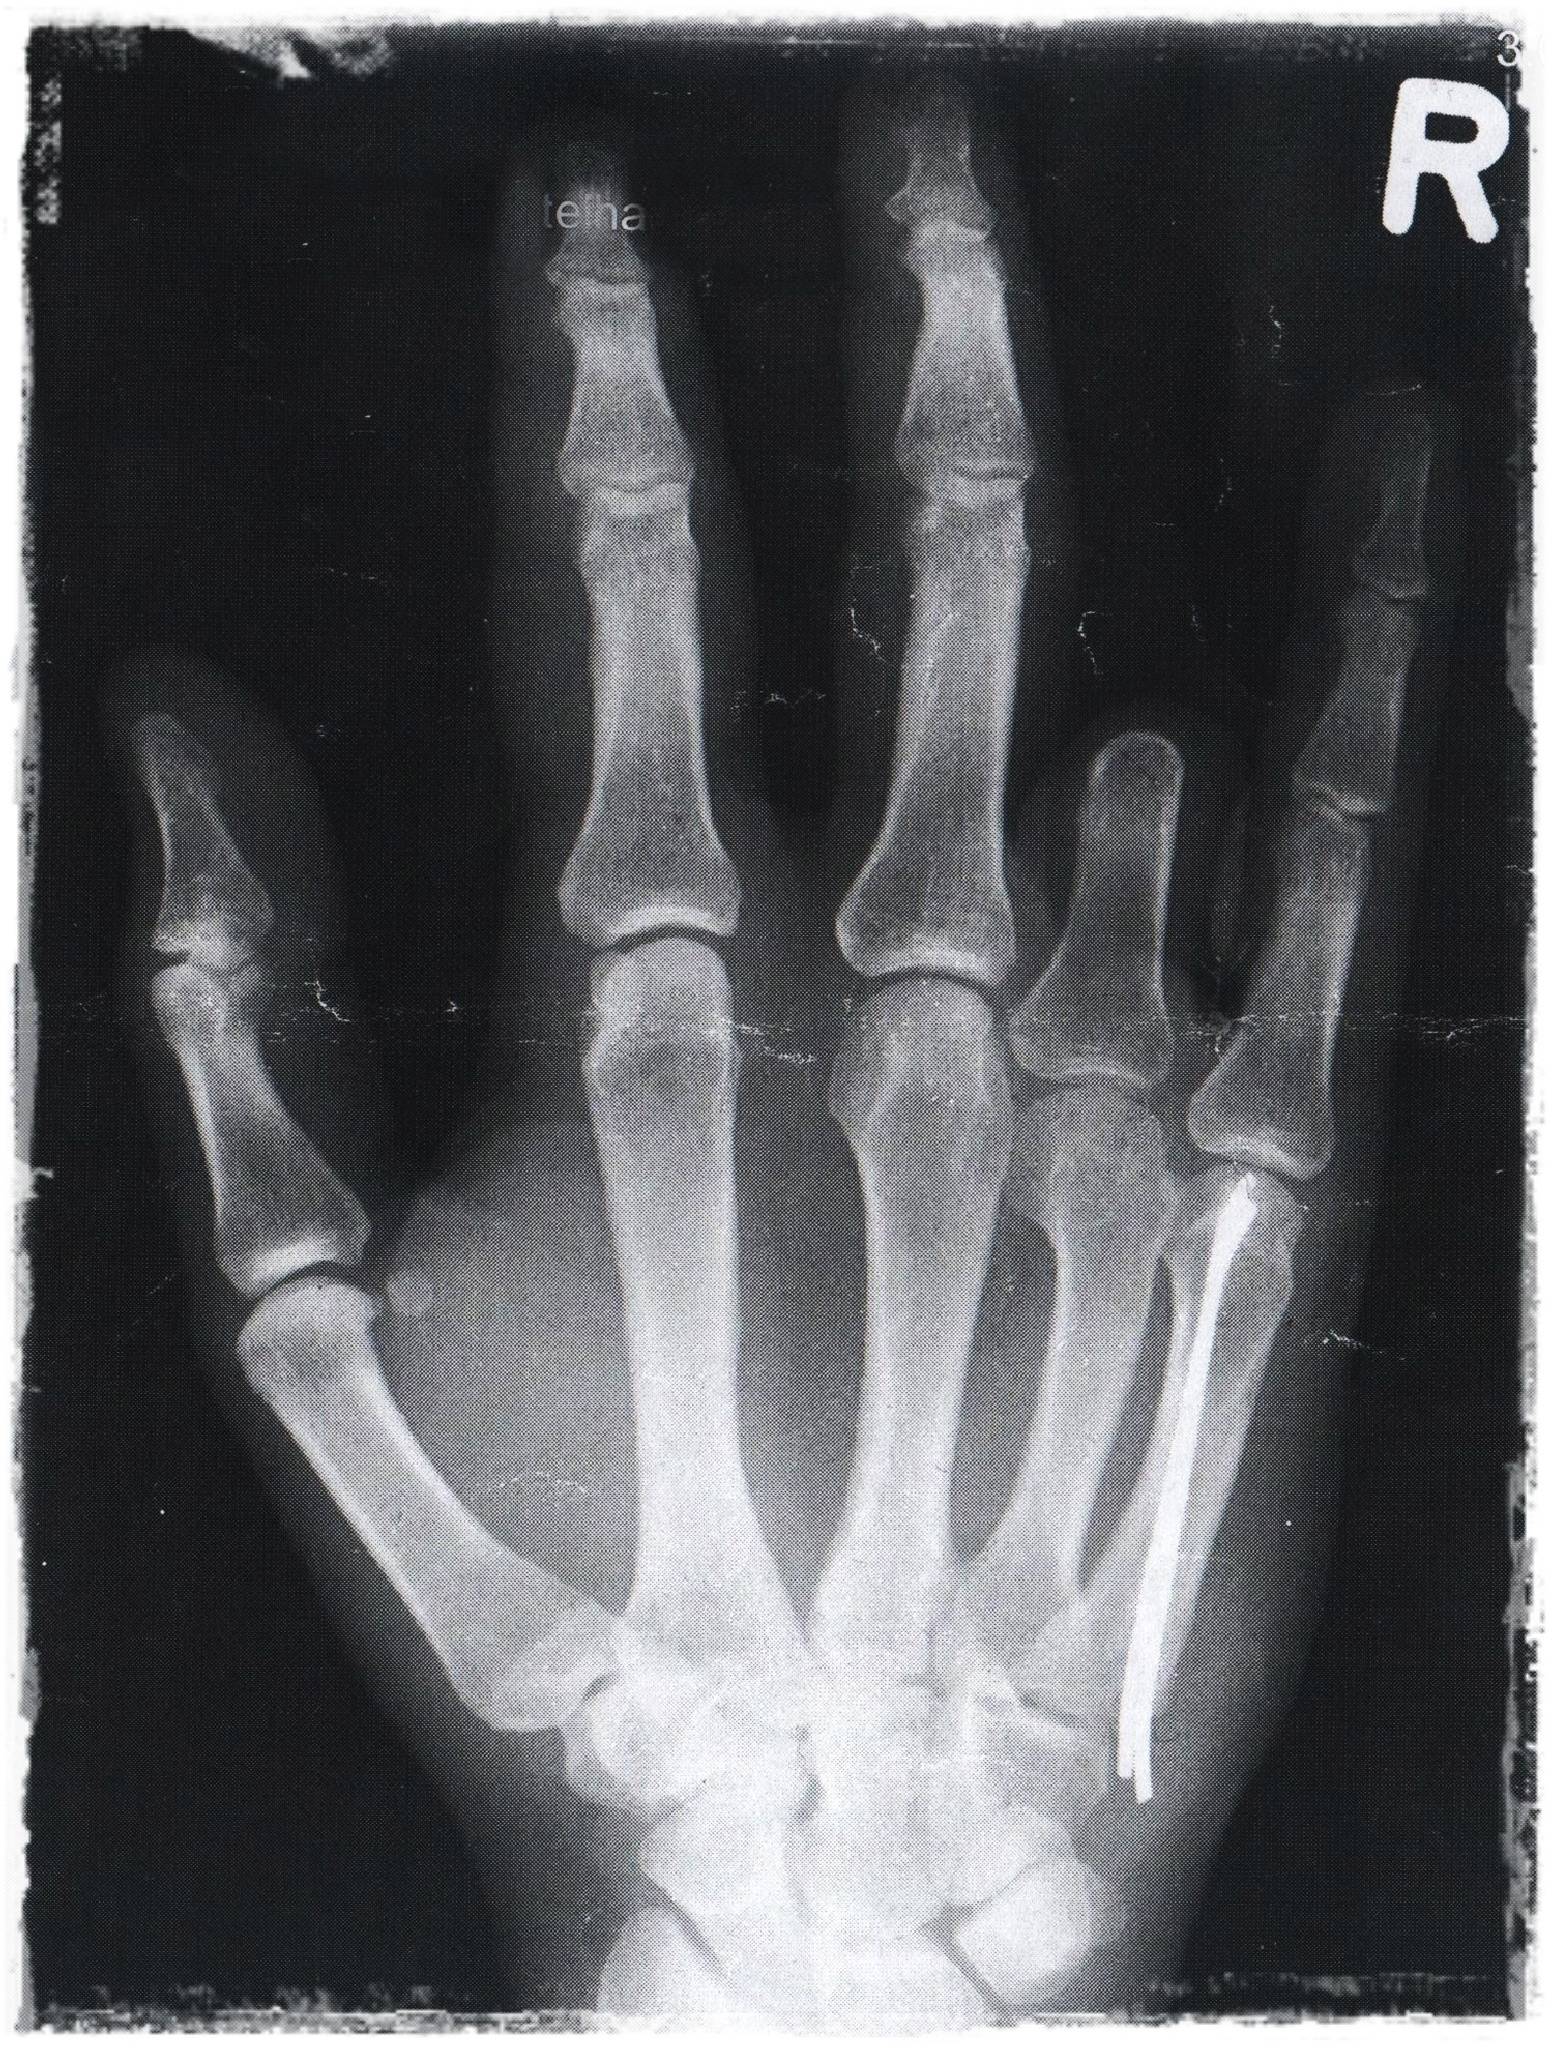 X-ray from my Hand by Jeans Brown Photography / Jens Schwarz